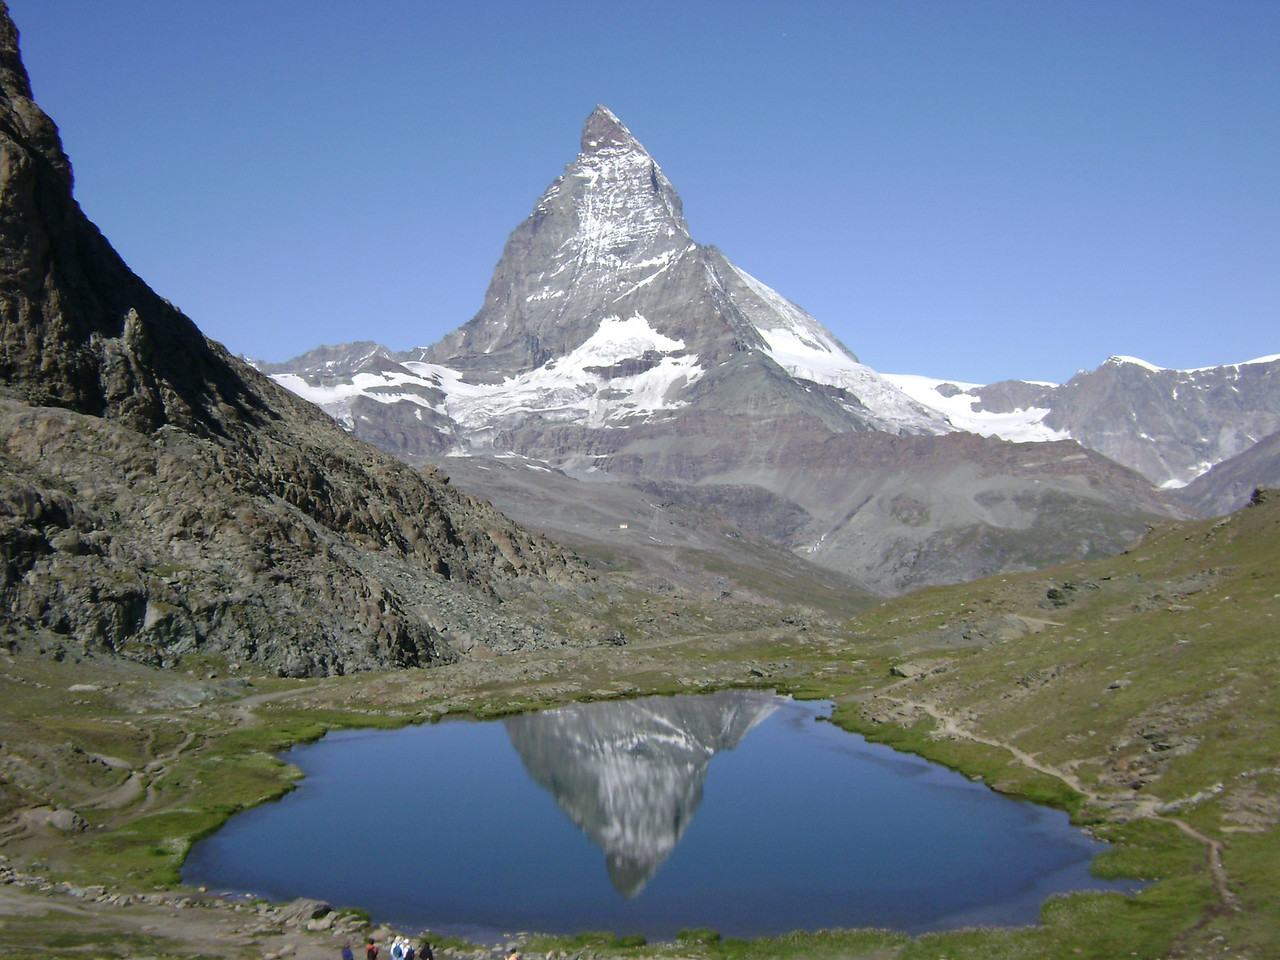 z The distinct tower of the Matterhorn is seen all over the area